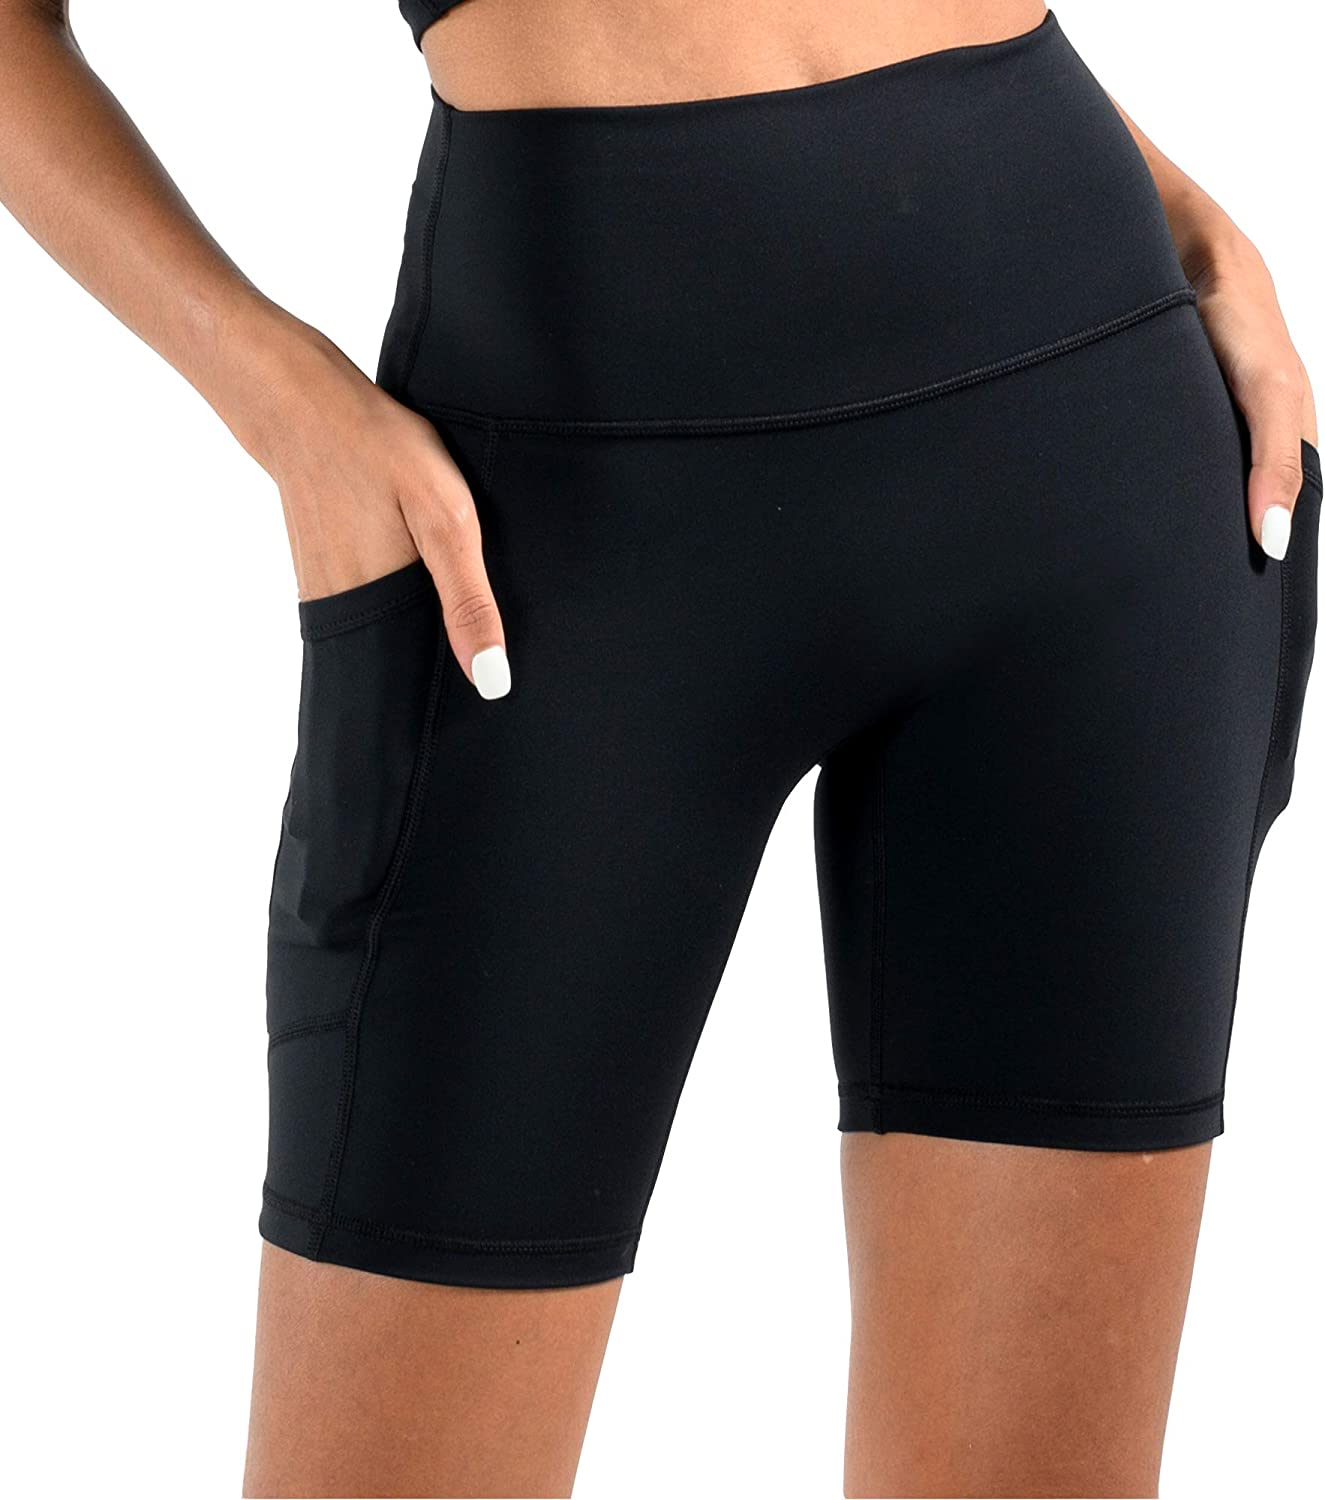 Telamon Ranking TOP3 High Waist Workout Yoga Athletic Compre Women for Shorts Special sale item